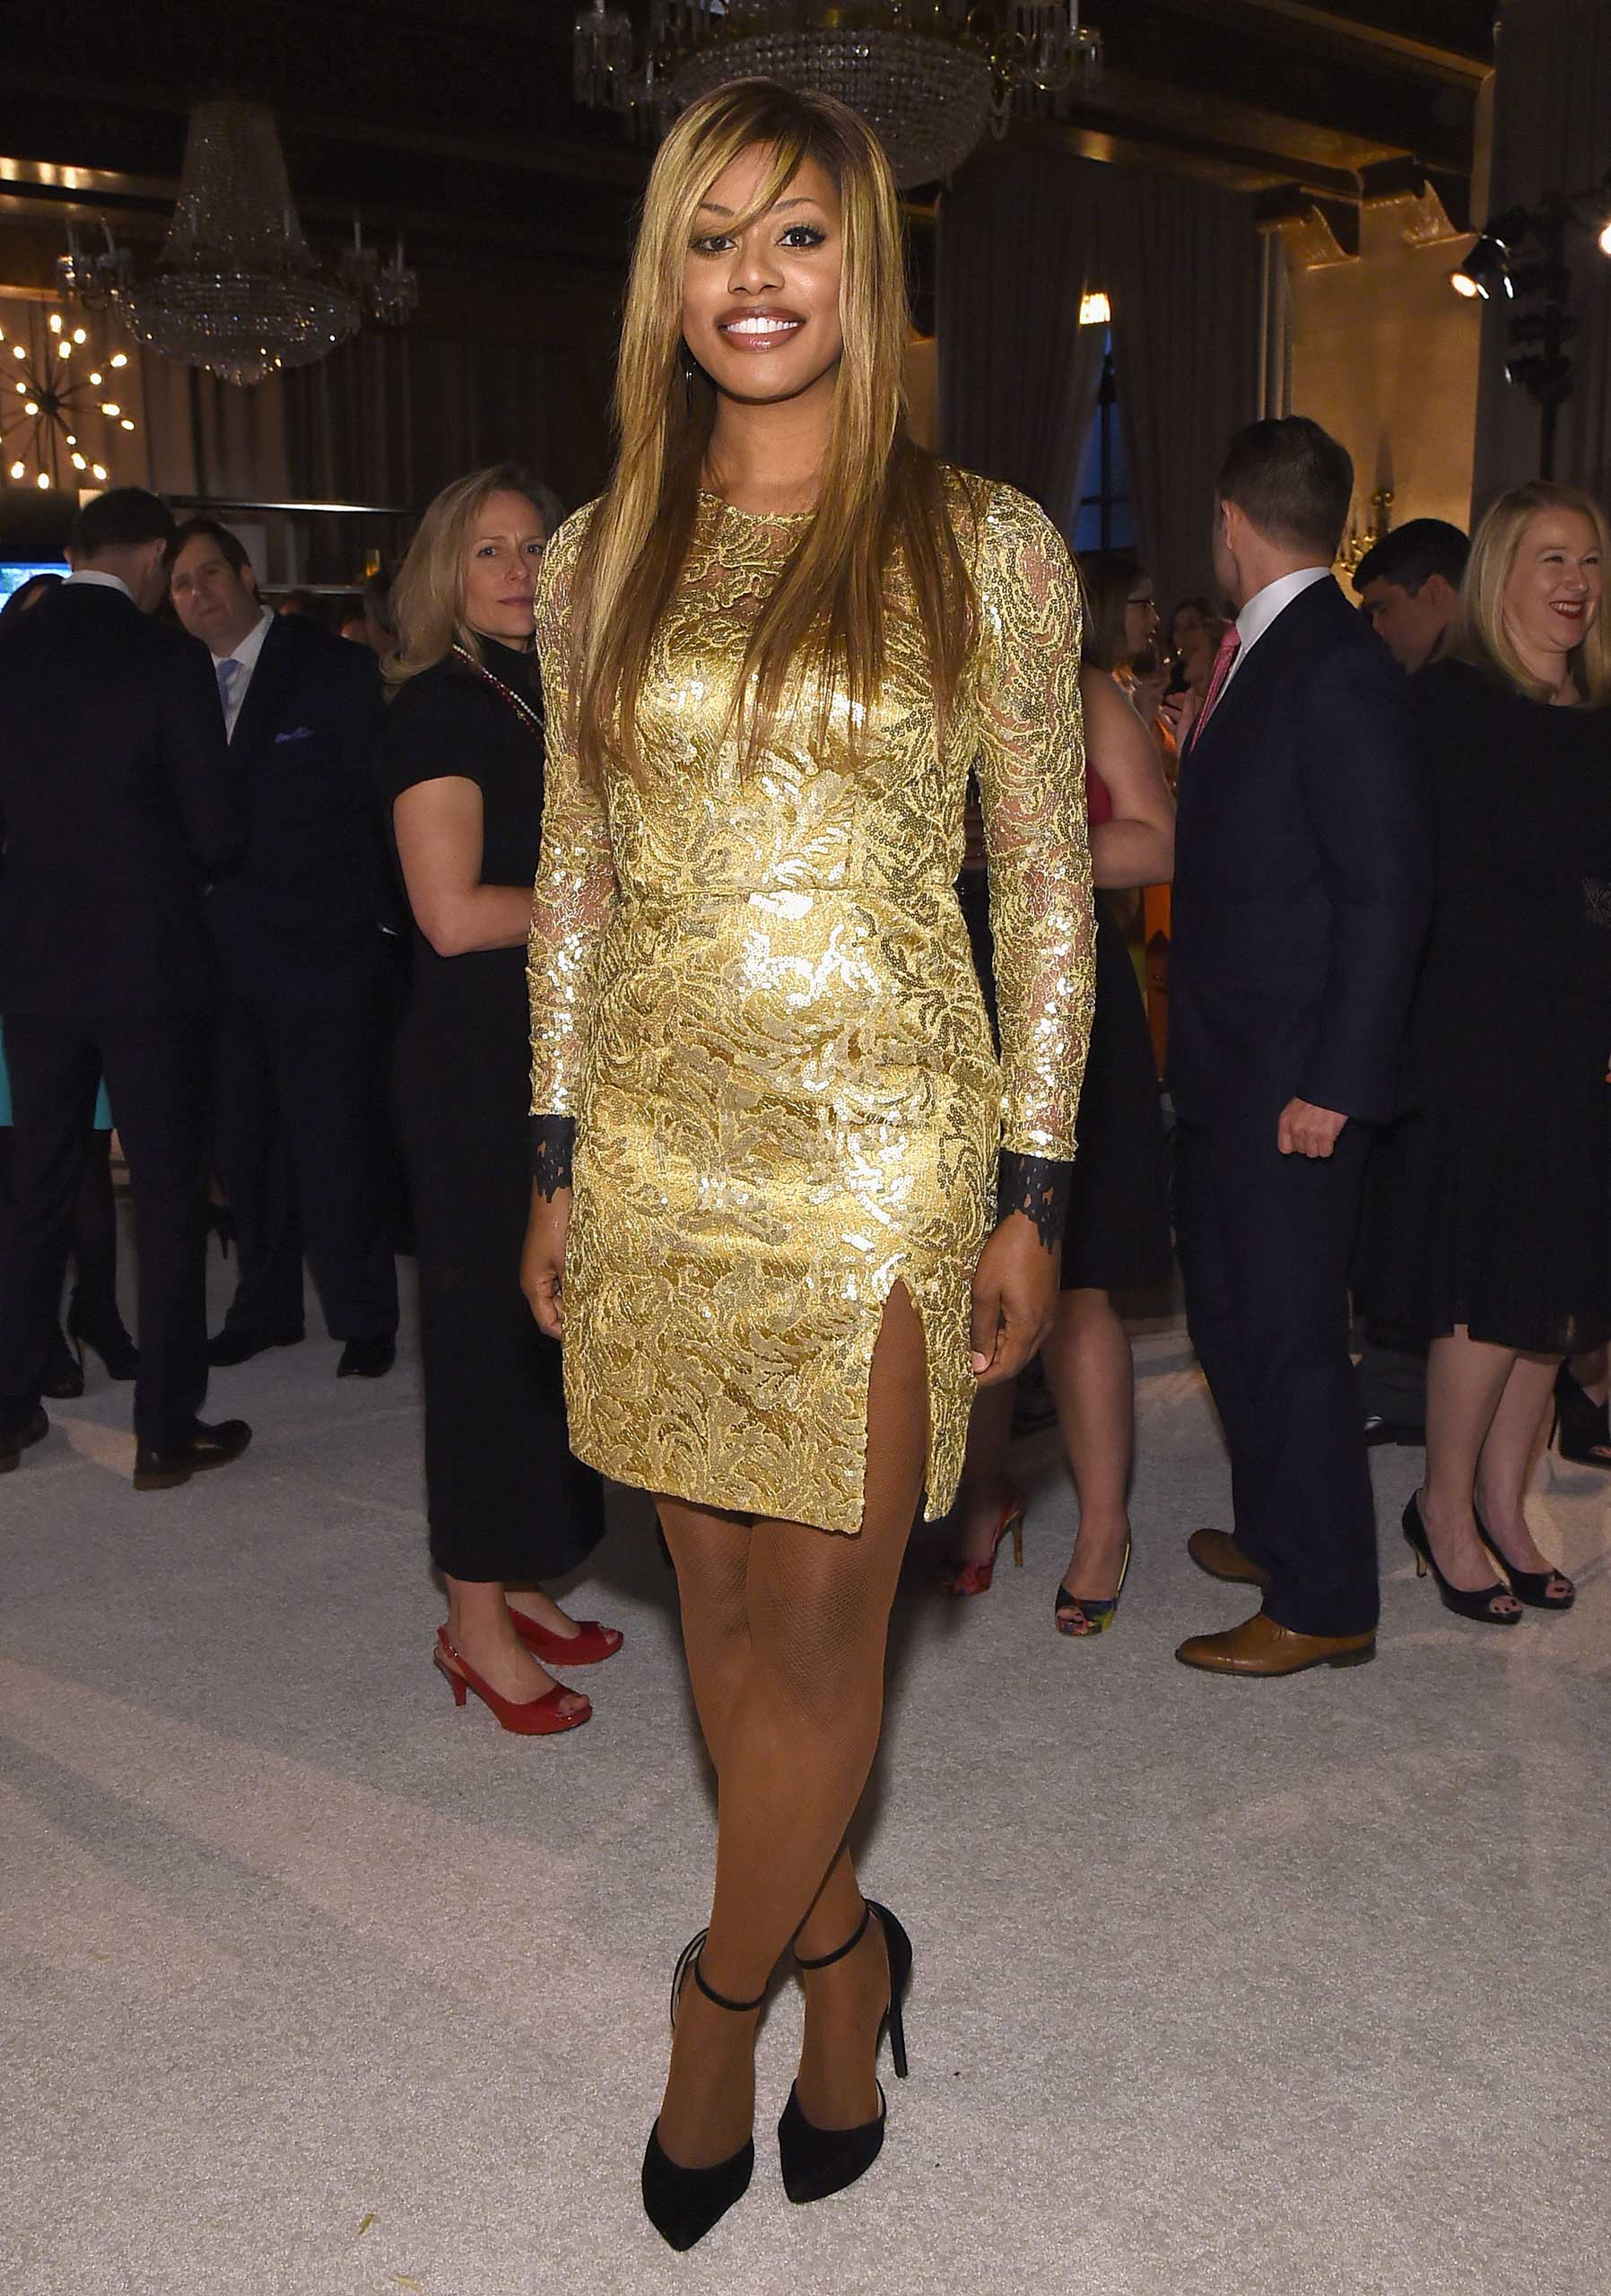 Actress Laverne Cox attends TIME and PEOPLE's annual cocktail party on White House Correspondents' Weekend at St Regis Hotel in Washington, D.C., on April 24, 2015